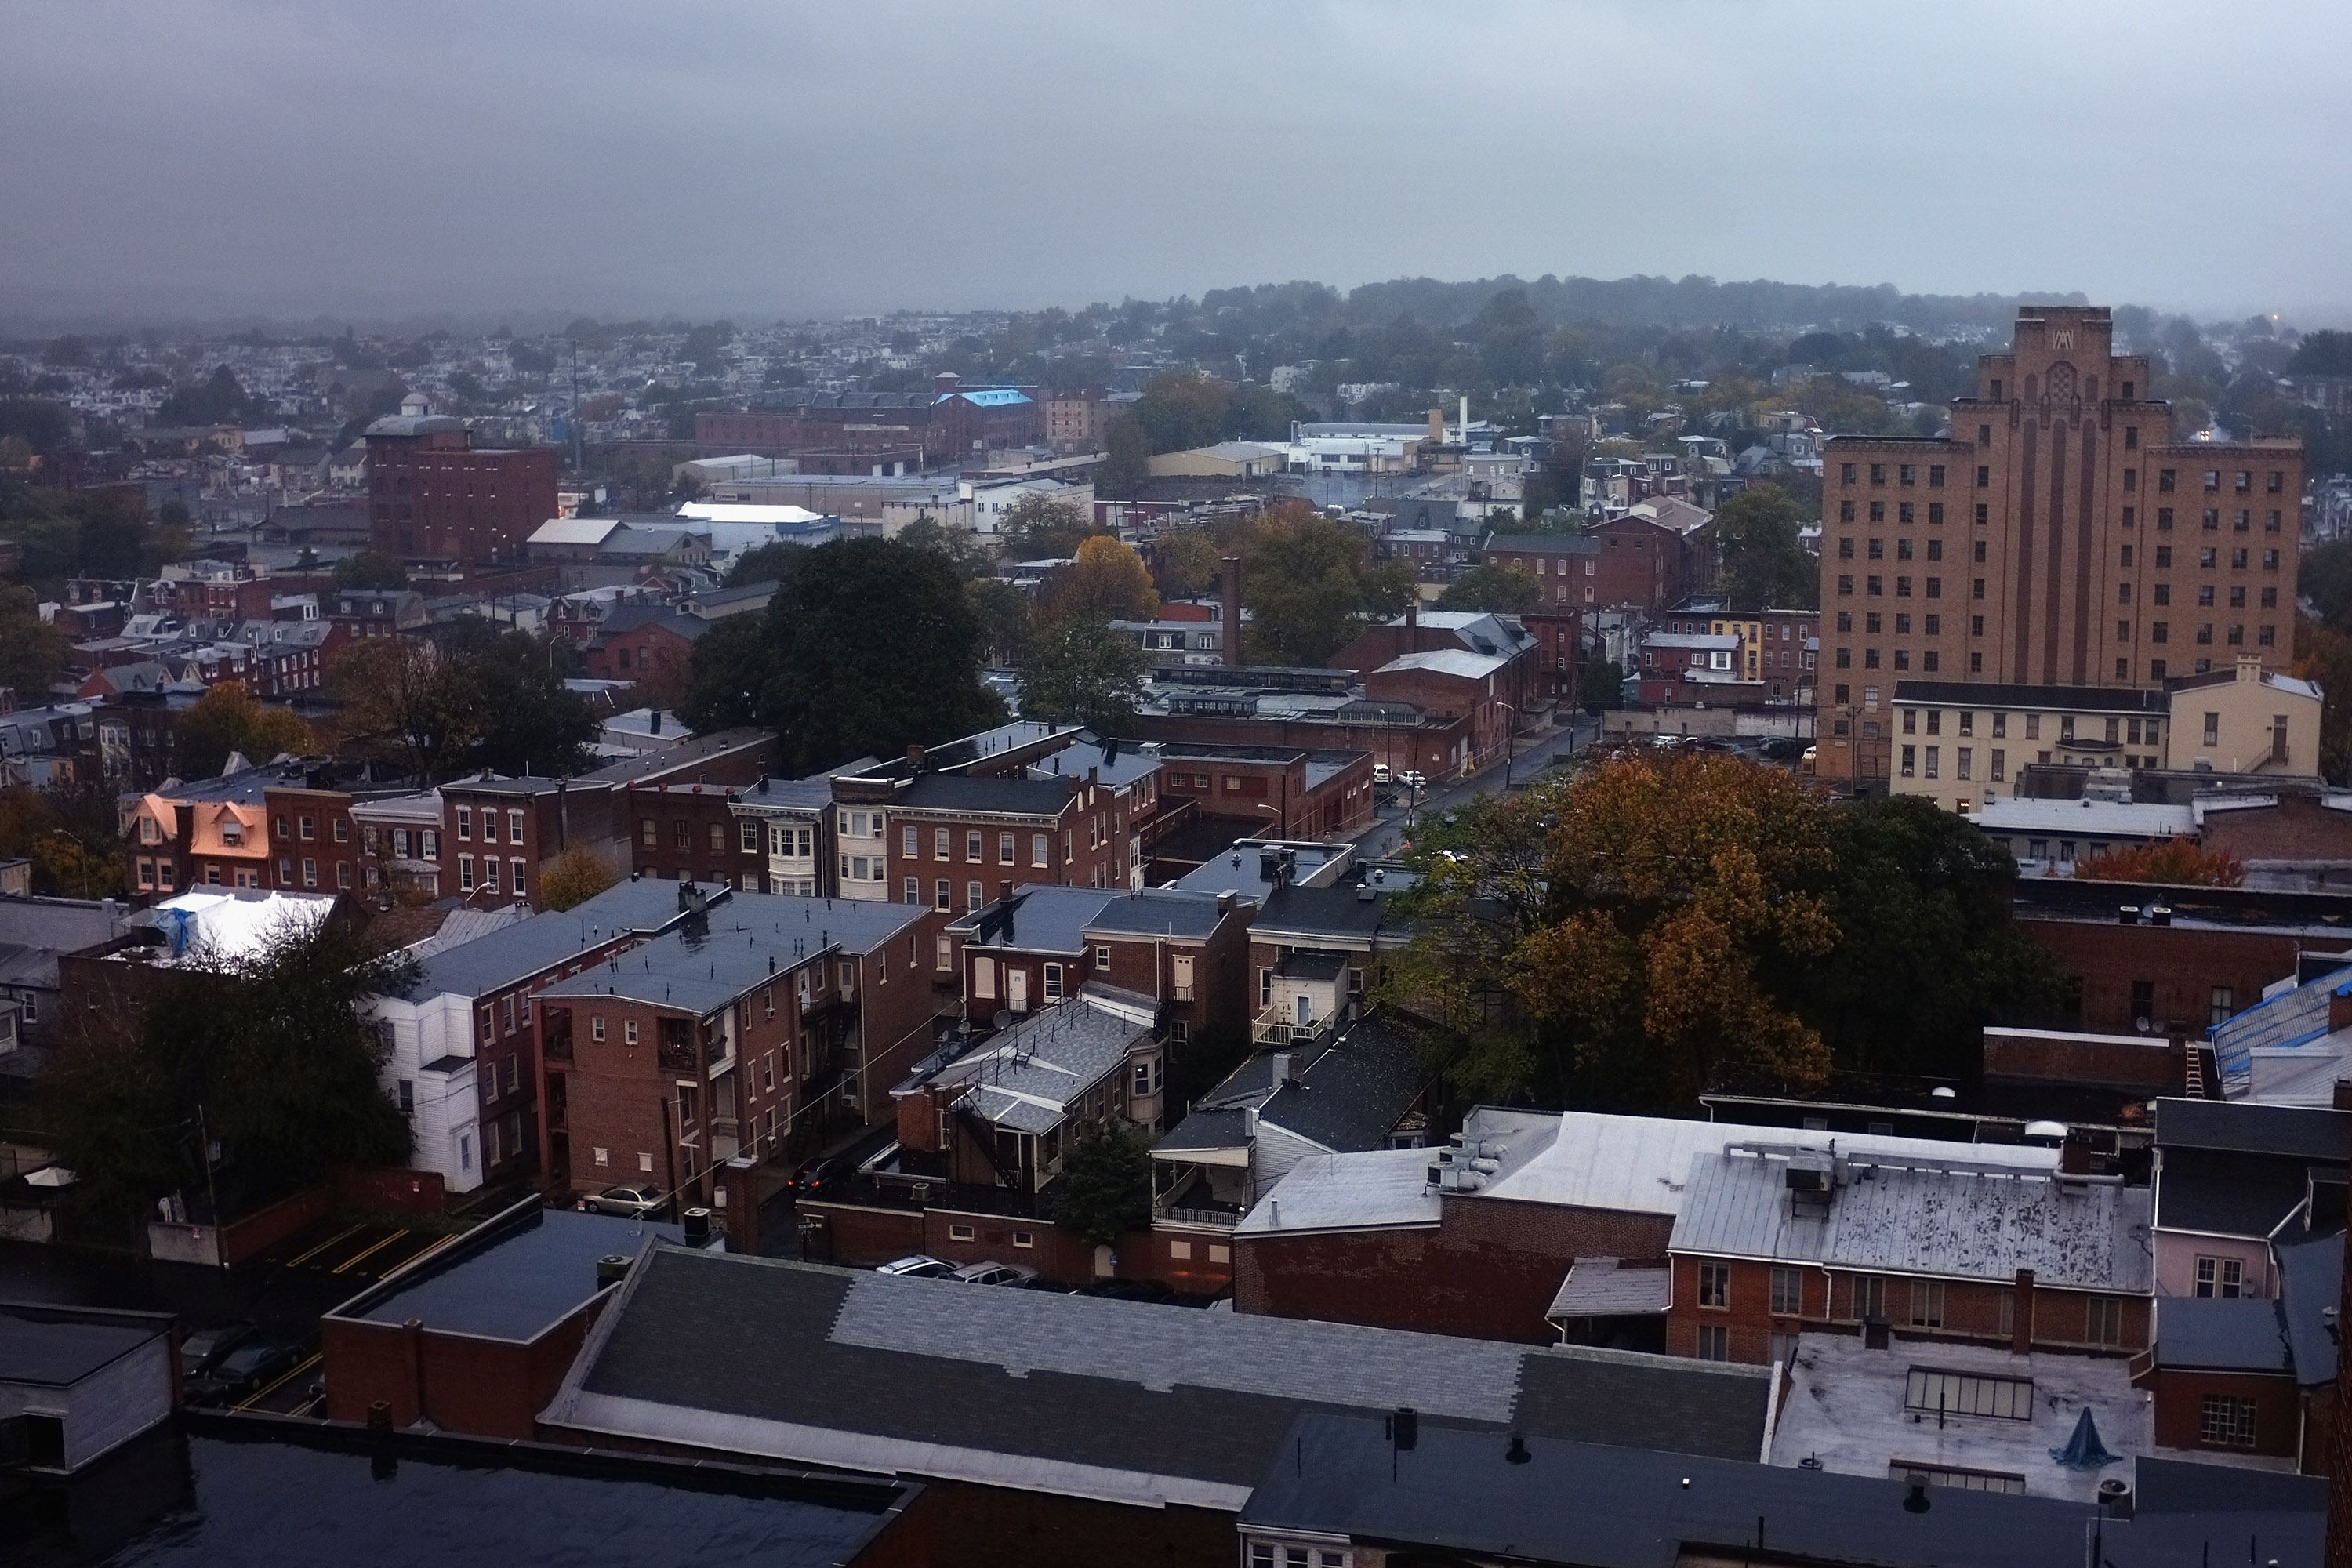 A view of downtown Reading